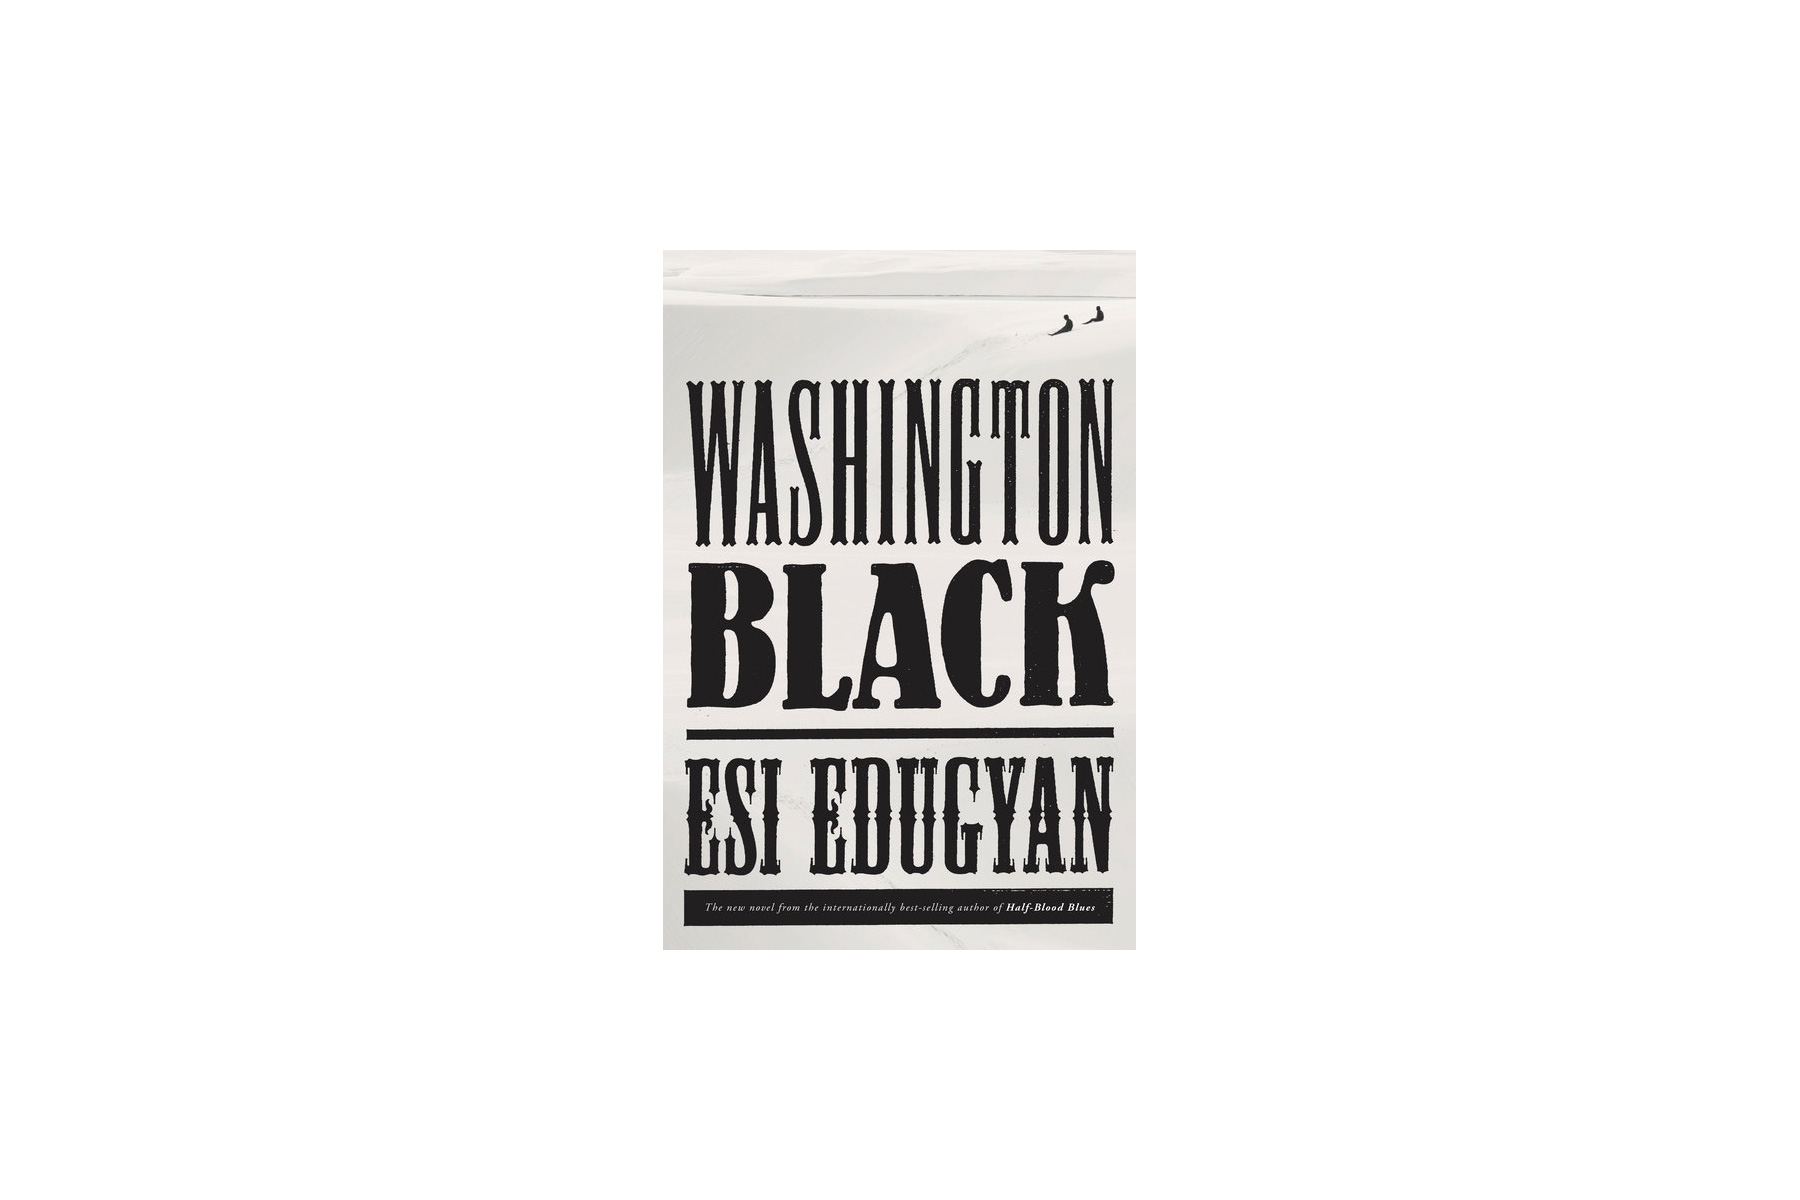 Washington Black, by Esi Edugyan